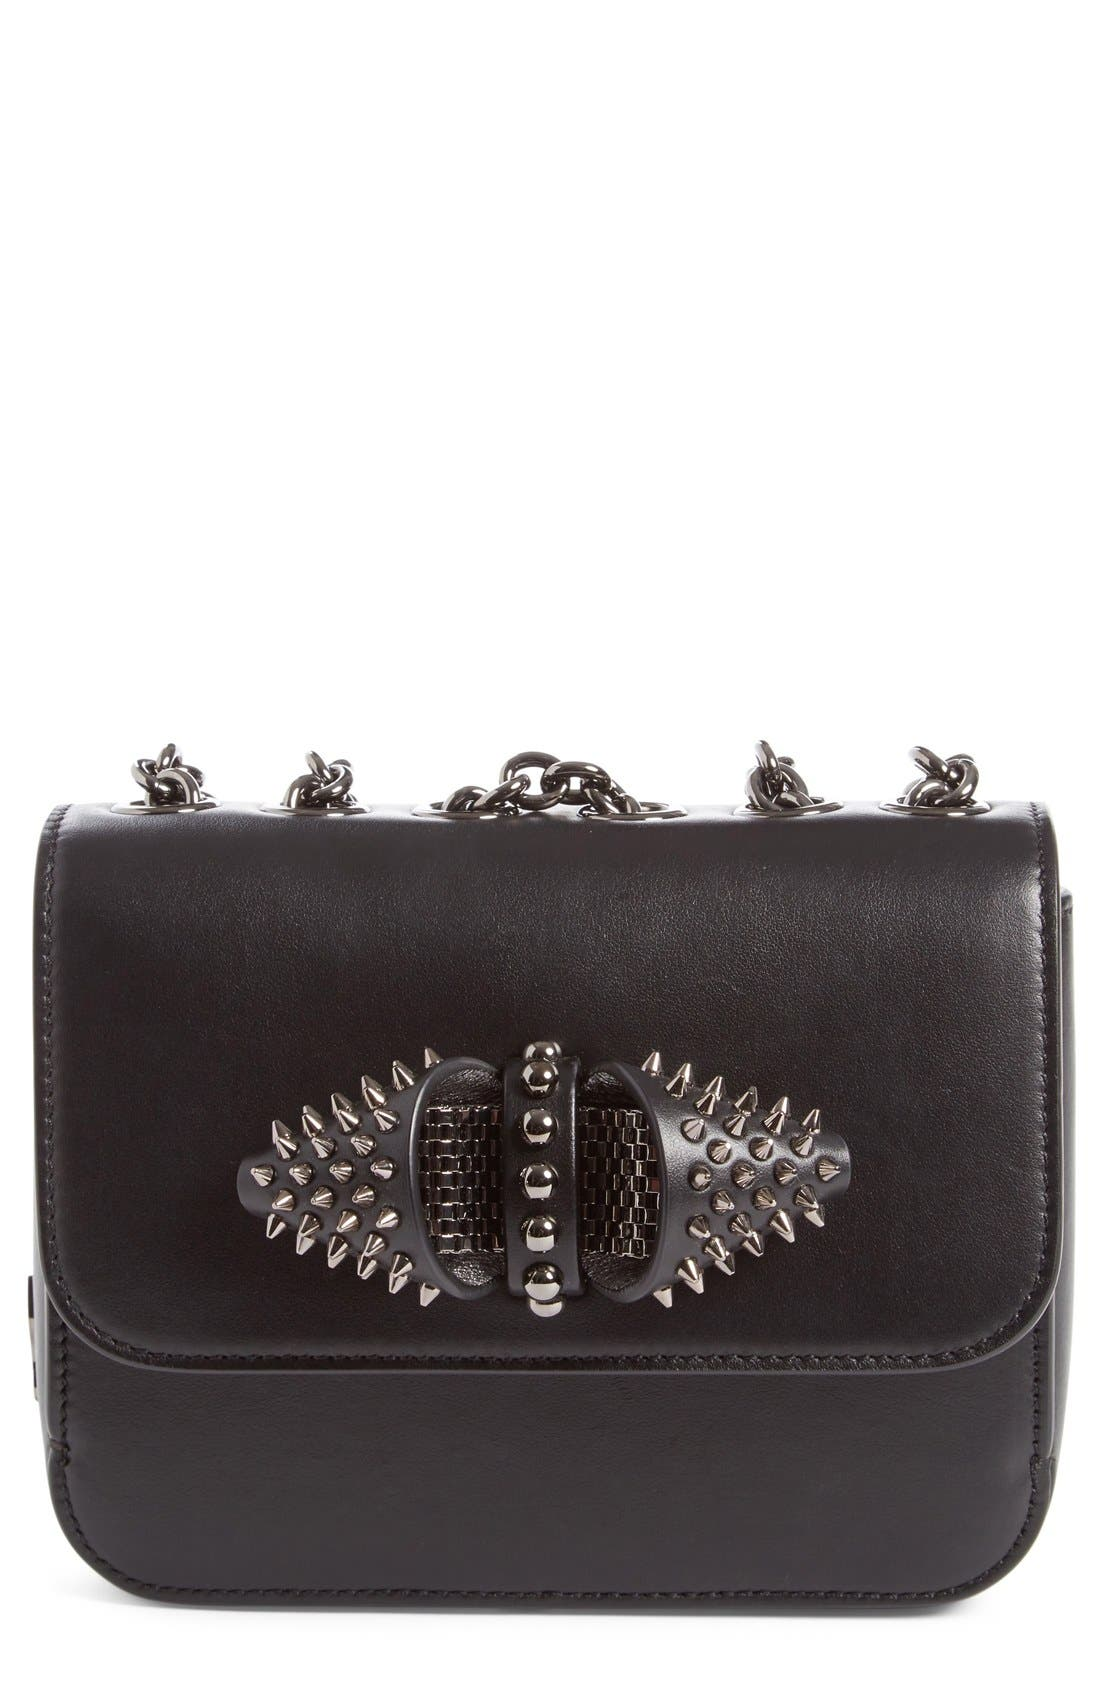 CHRISTIAN LOUBOUTIN Small Sweet Charity Spiked Calfskin Shoulder/Crossbody Bag